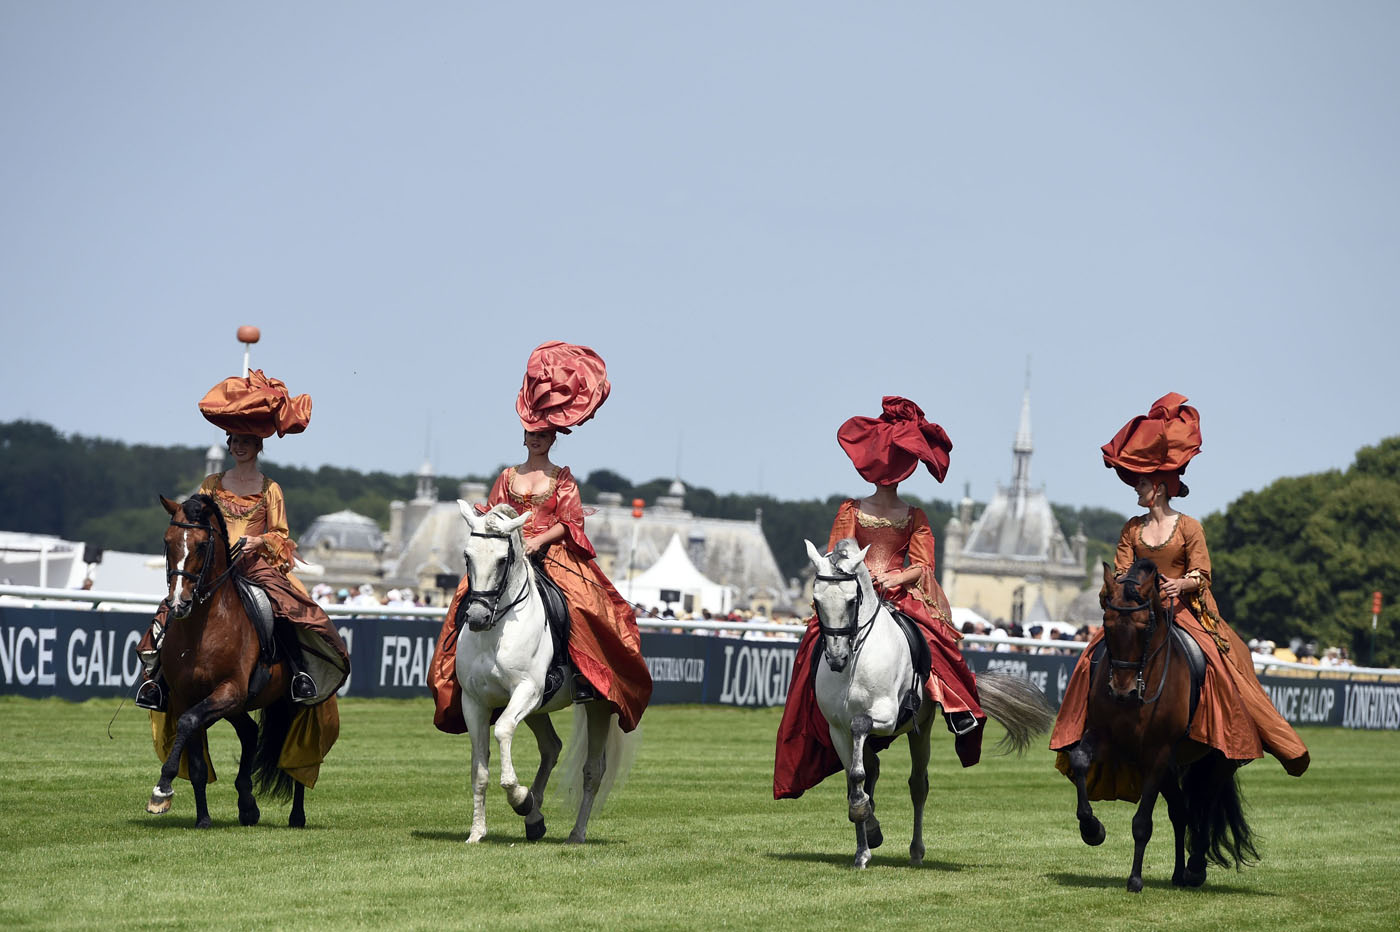 Hats (and horses) at the Prix de Diane